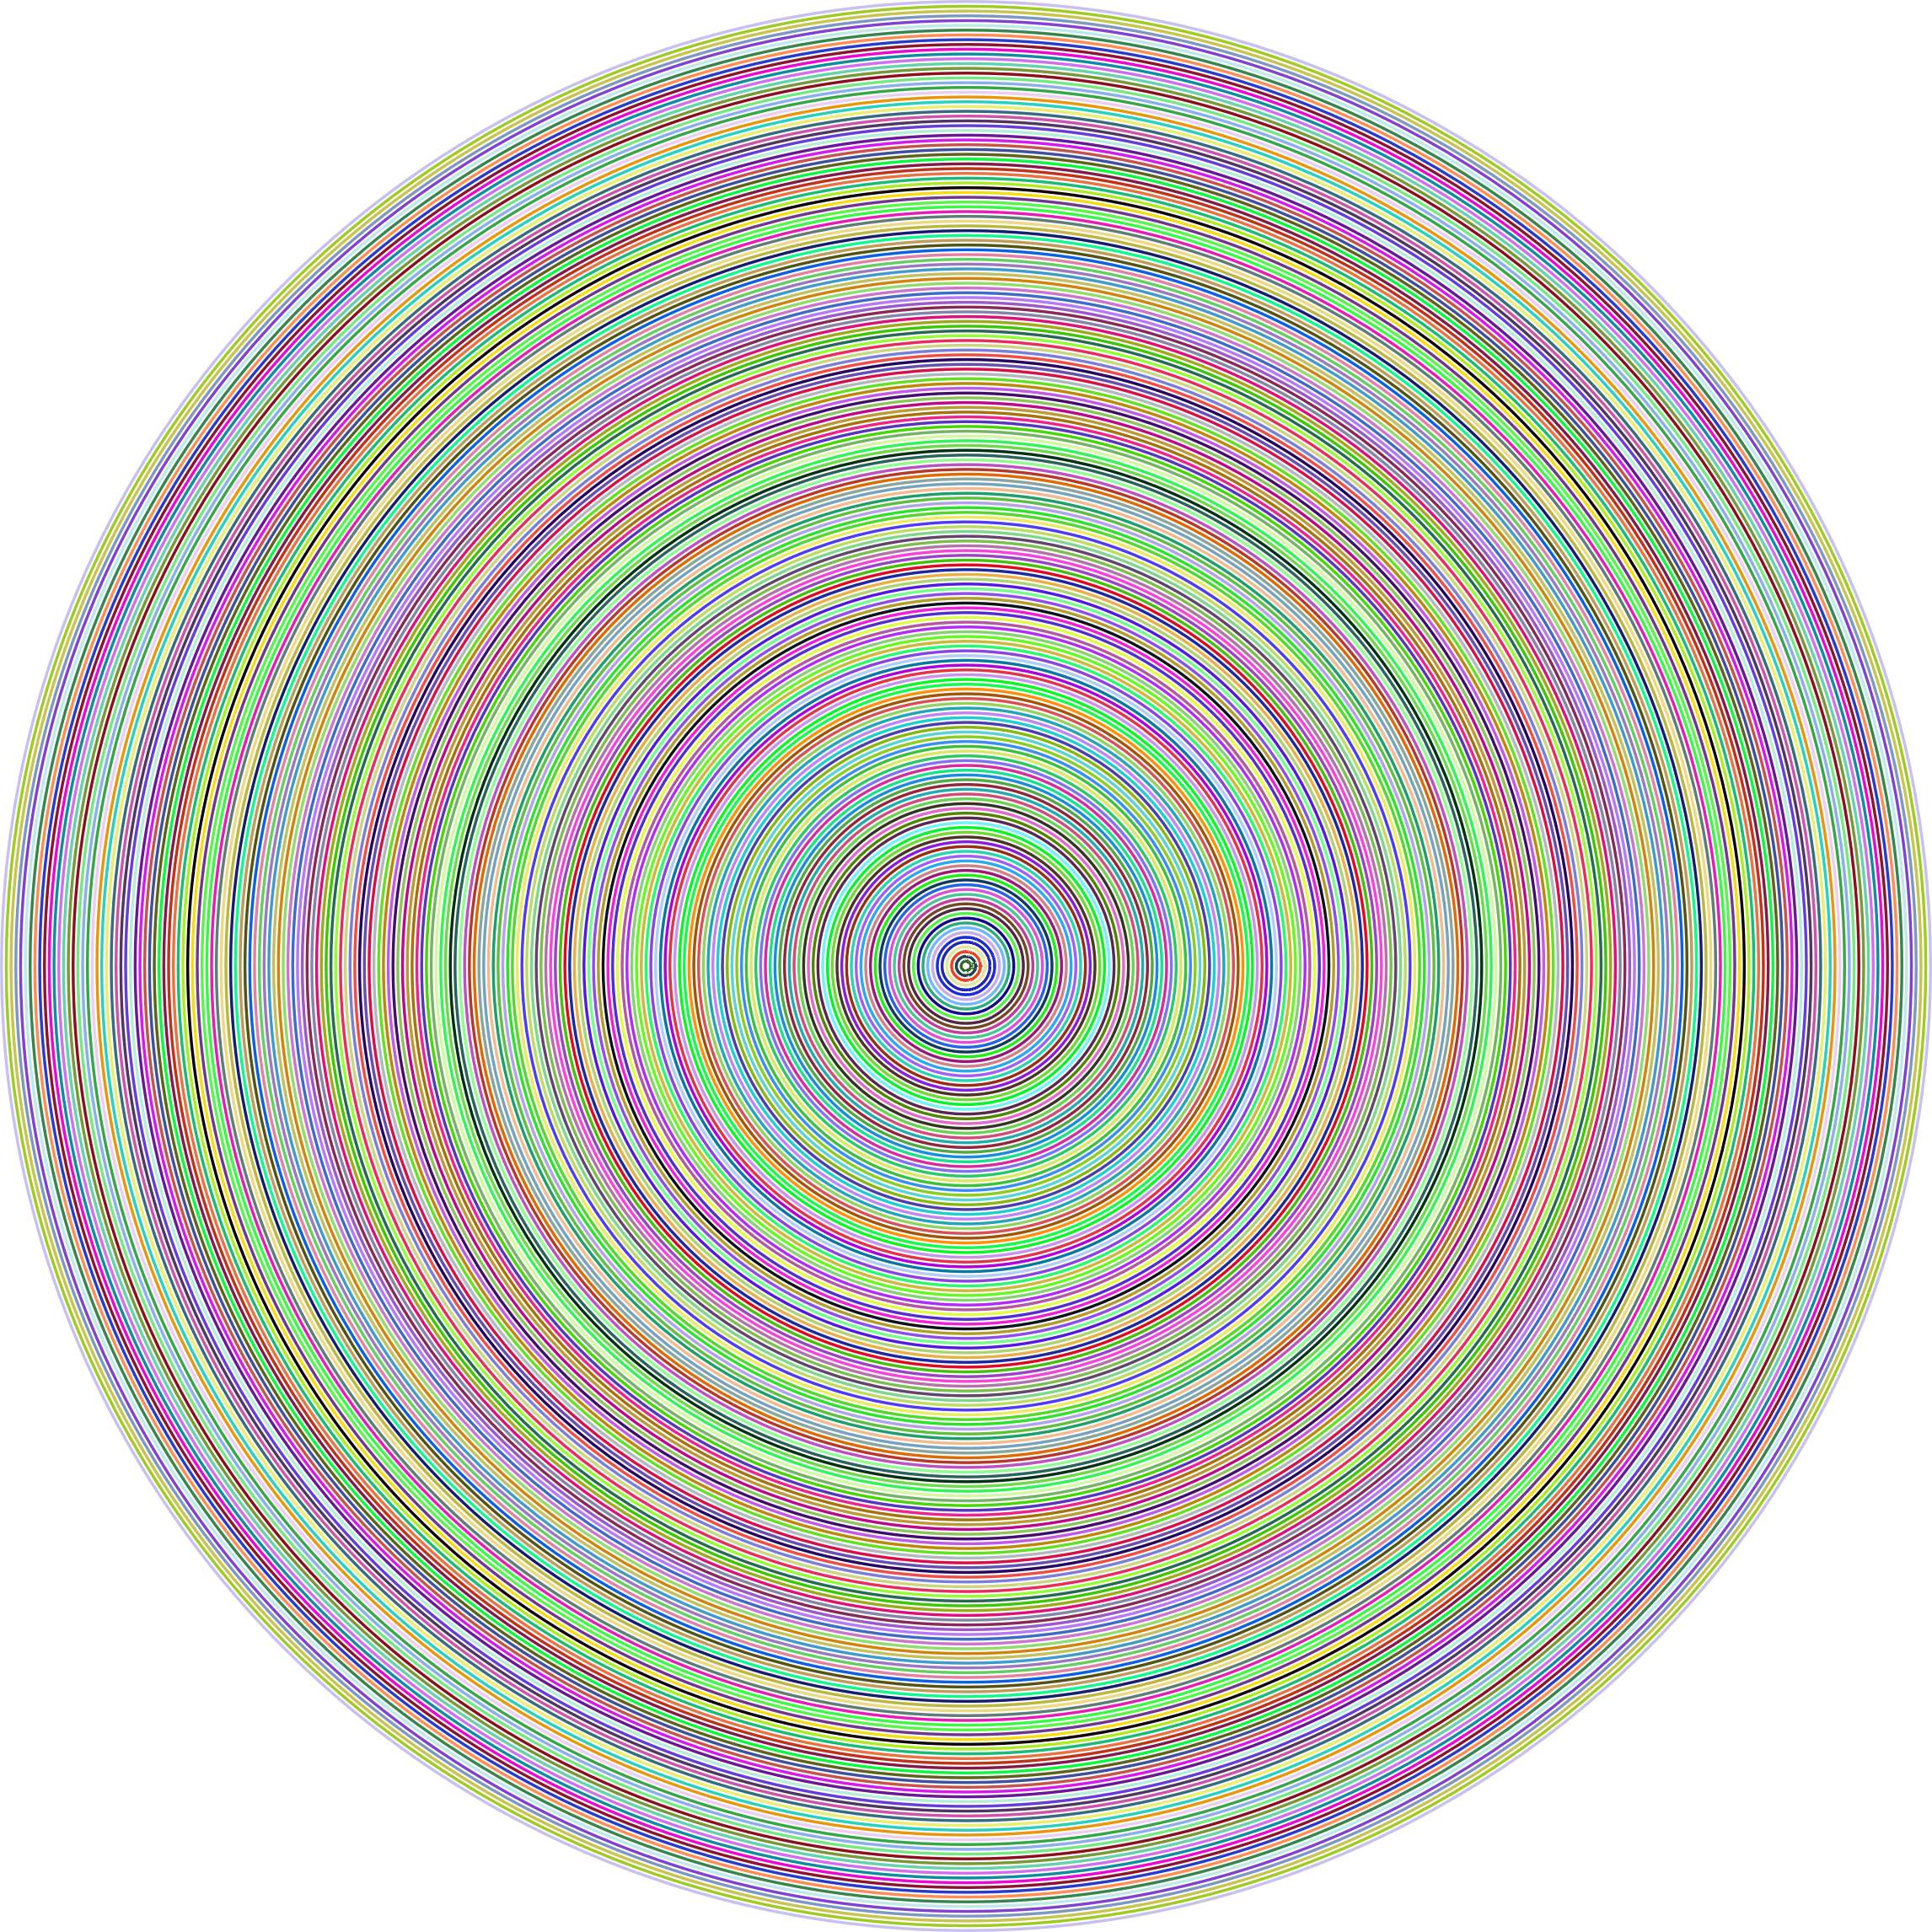 Concentric Prismatic Circles No Background by GDJ